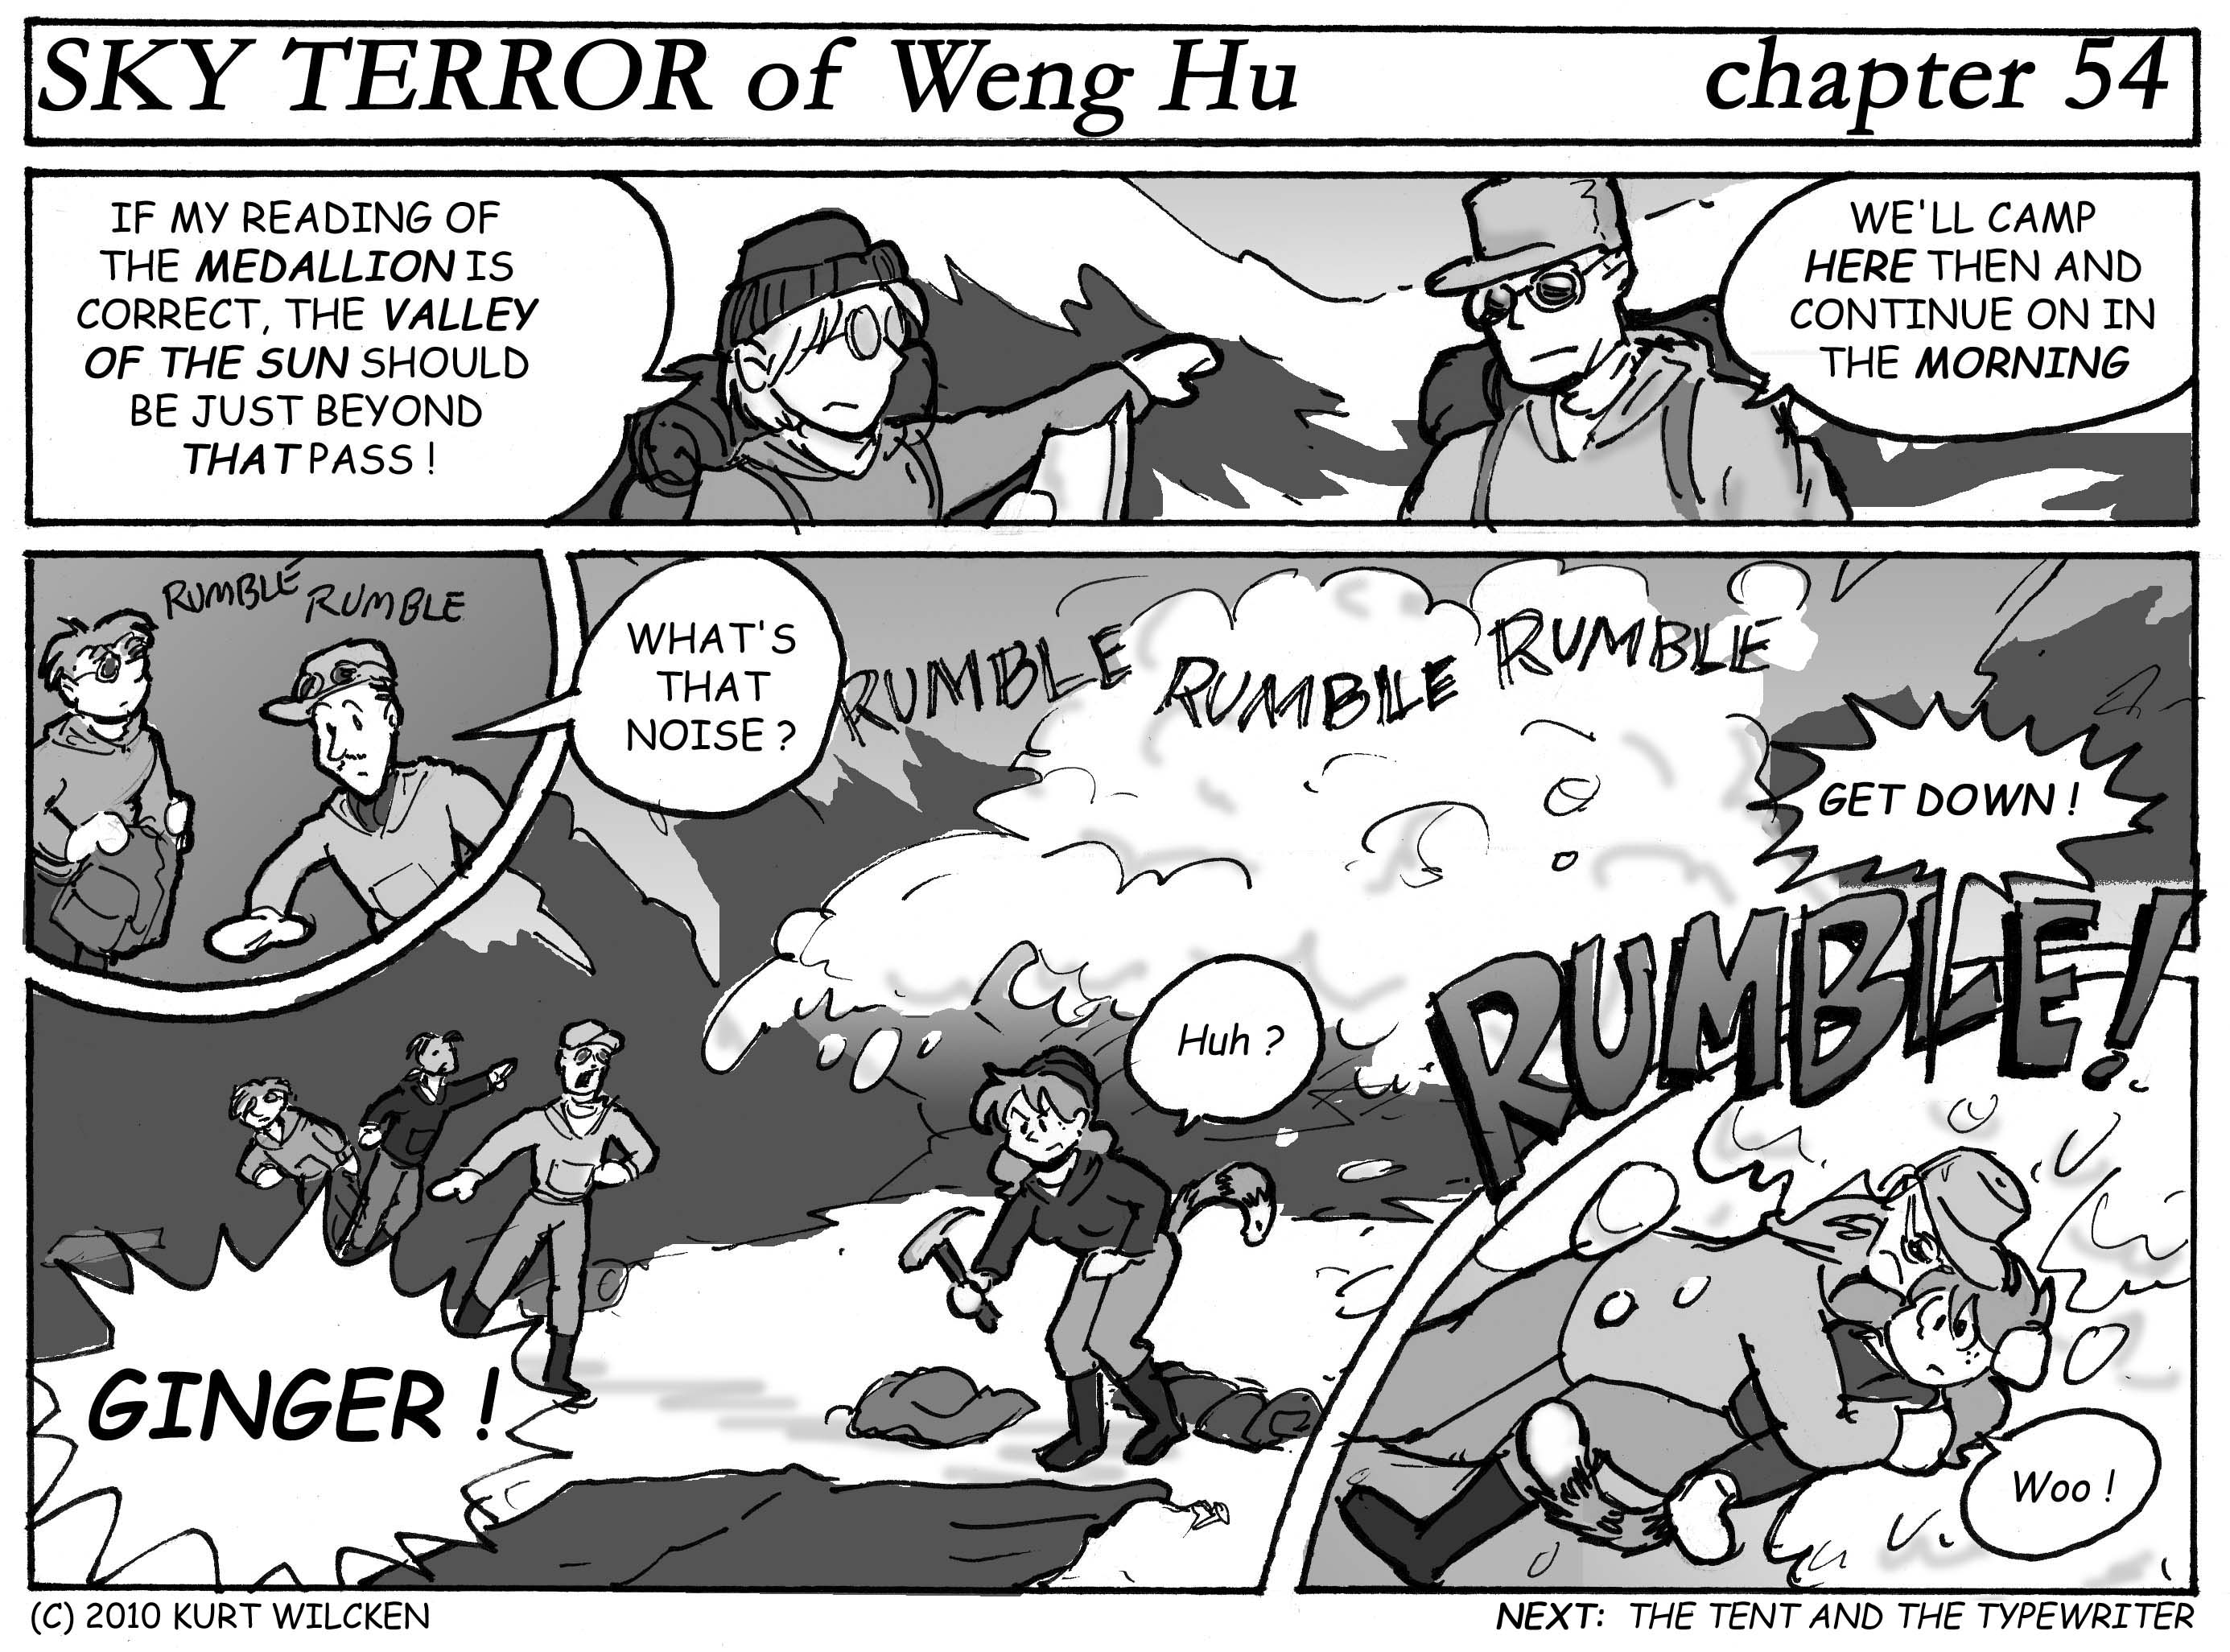 SKY TERROR of Weng Hu:  Chapter 54 — Ready to Rumble